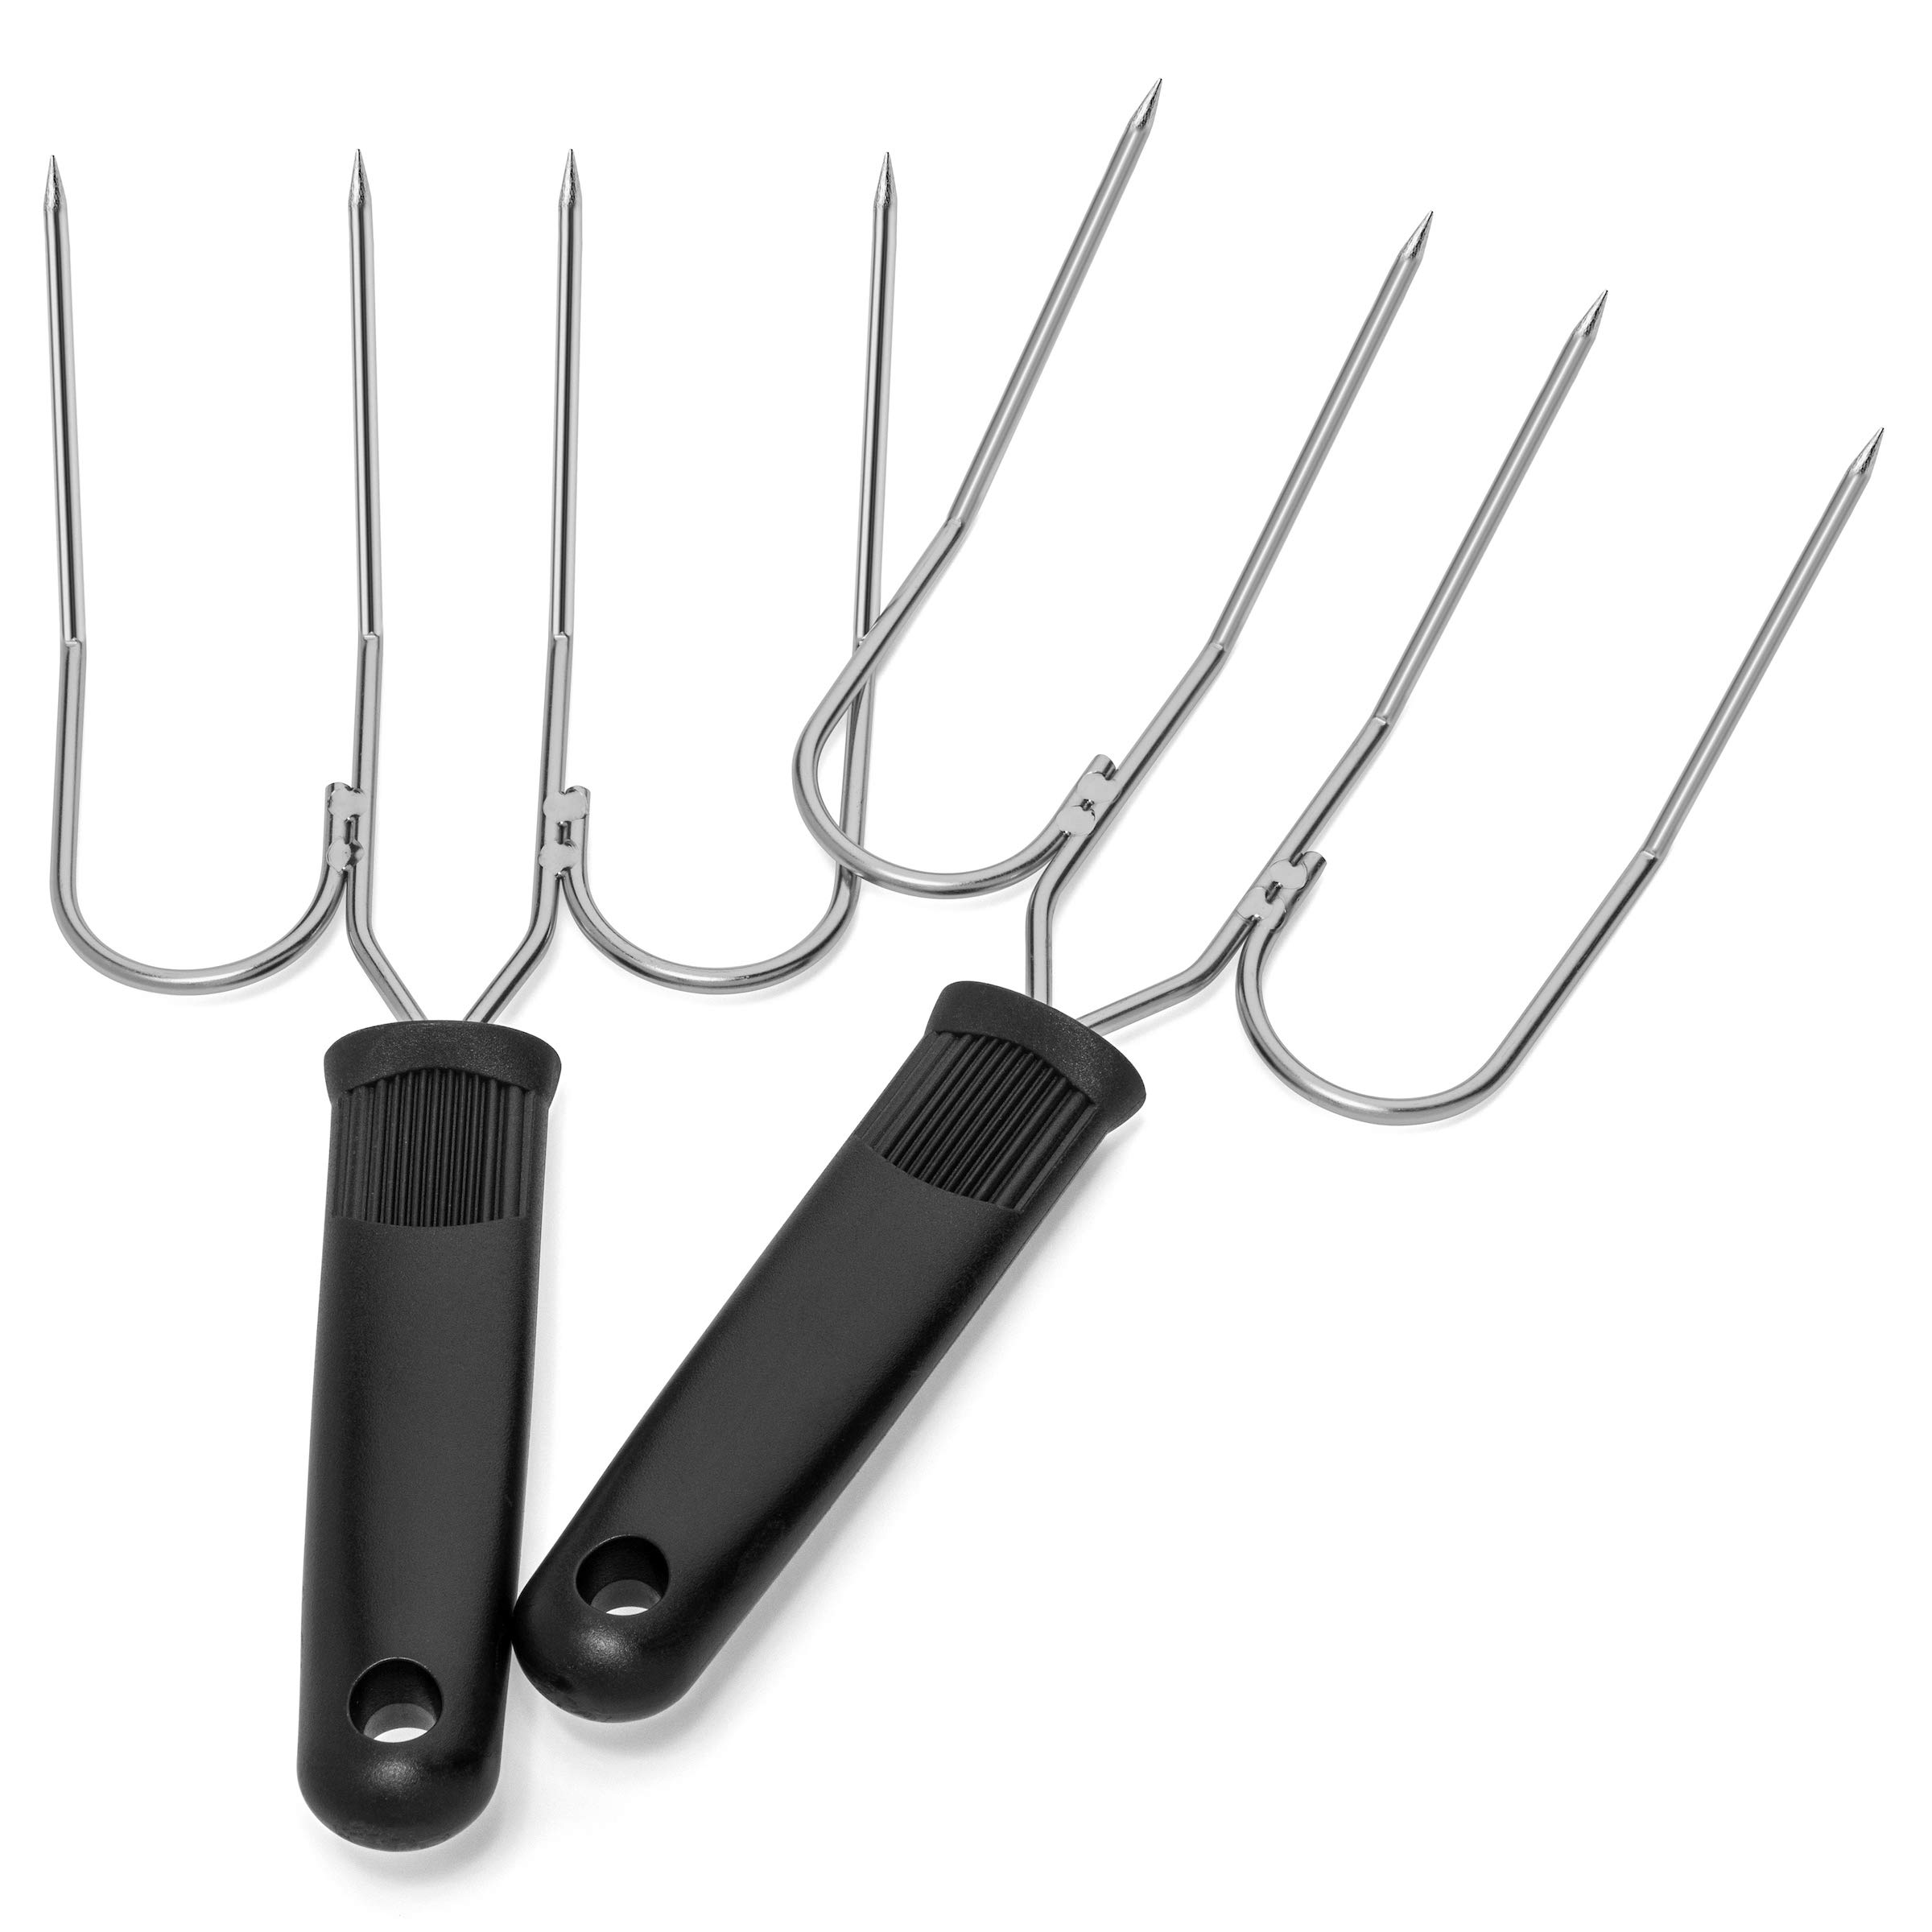 Turkey Lifter Forks - Set of 2 Stainless Steel Turkey Lifters - Will Not Bend or Break - Slip Resistant Grip - Doubles as Thanksgiving Carving Fork by Light Autumn